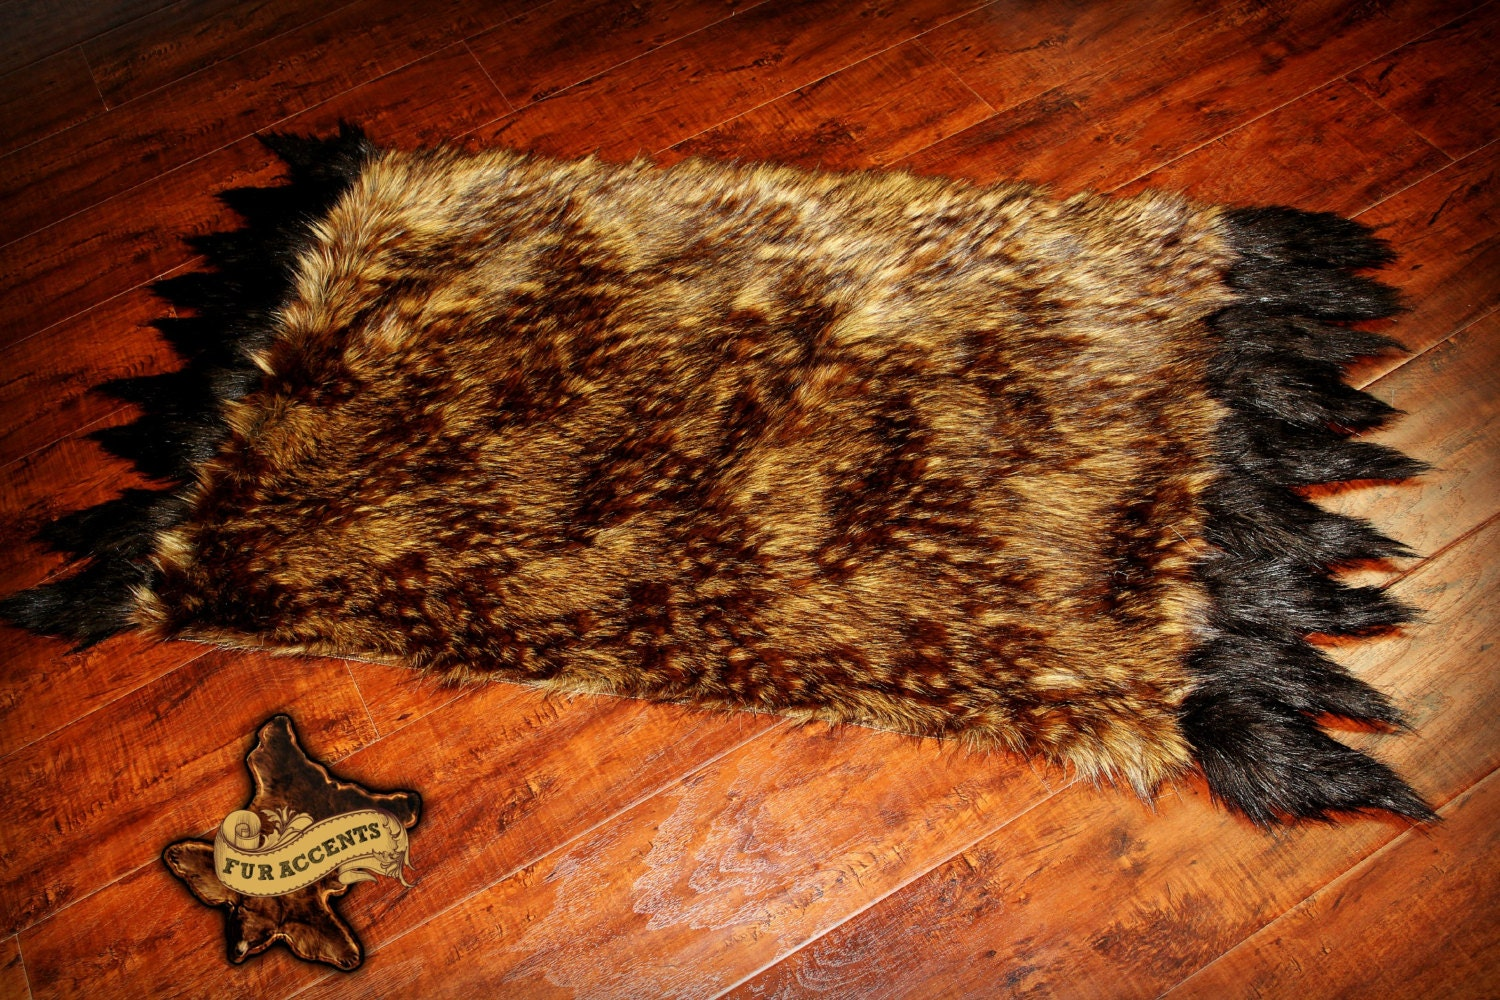 fur accents bear skin rug with tail fringe faux by furaccents. Black Bedroom Furniture Sets. Home Design Ideas